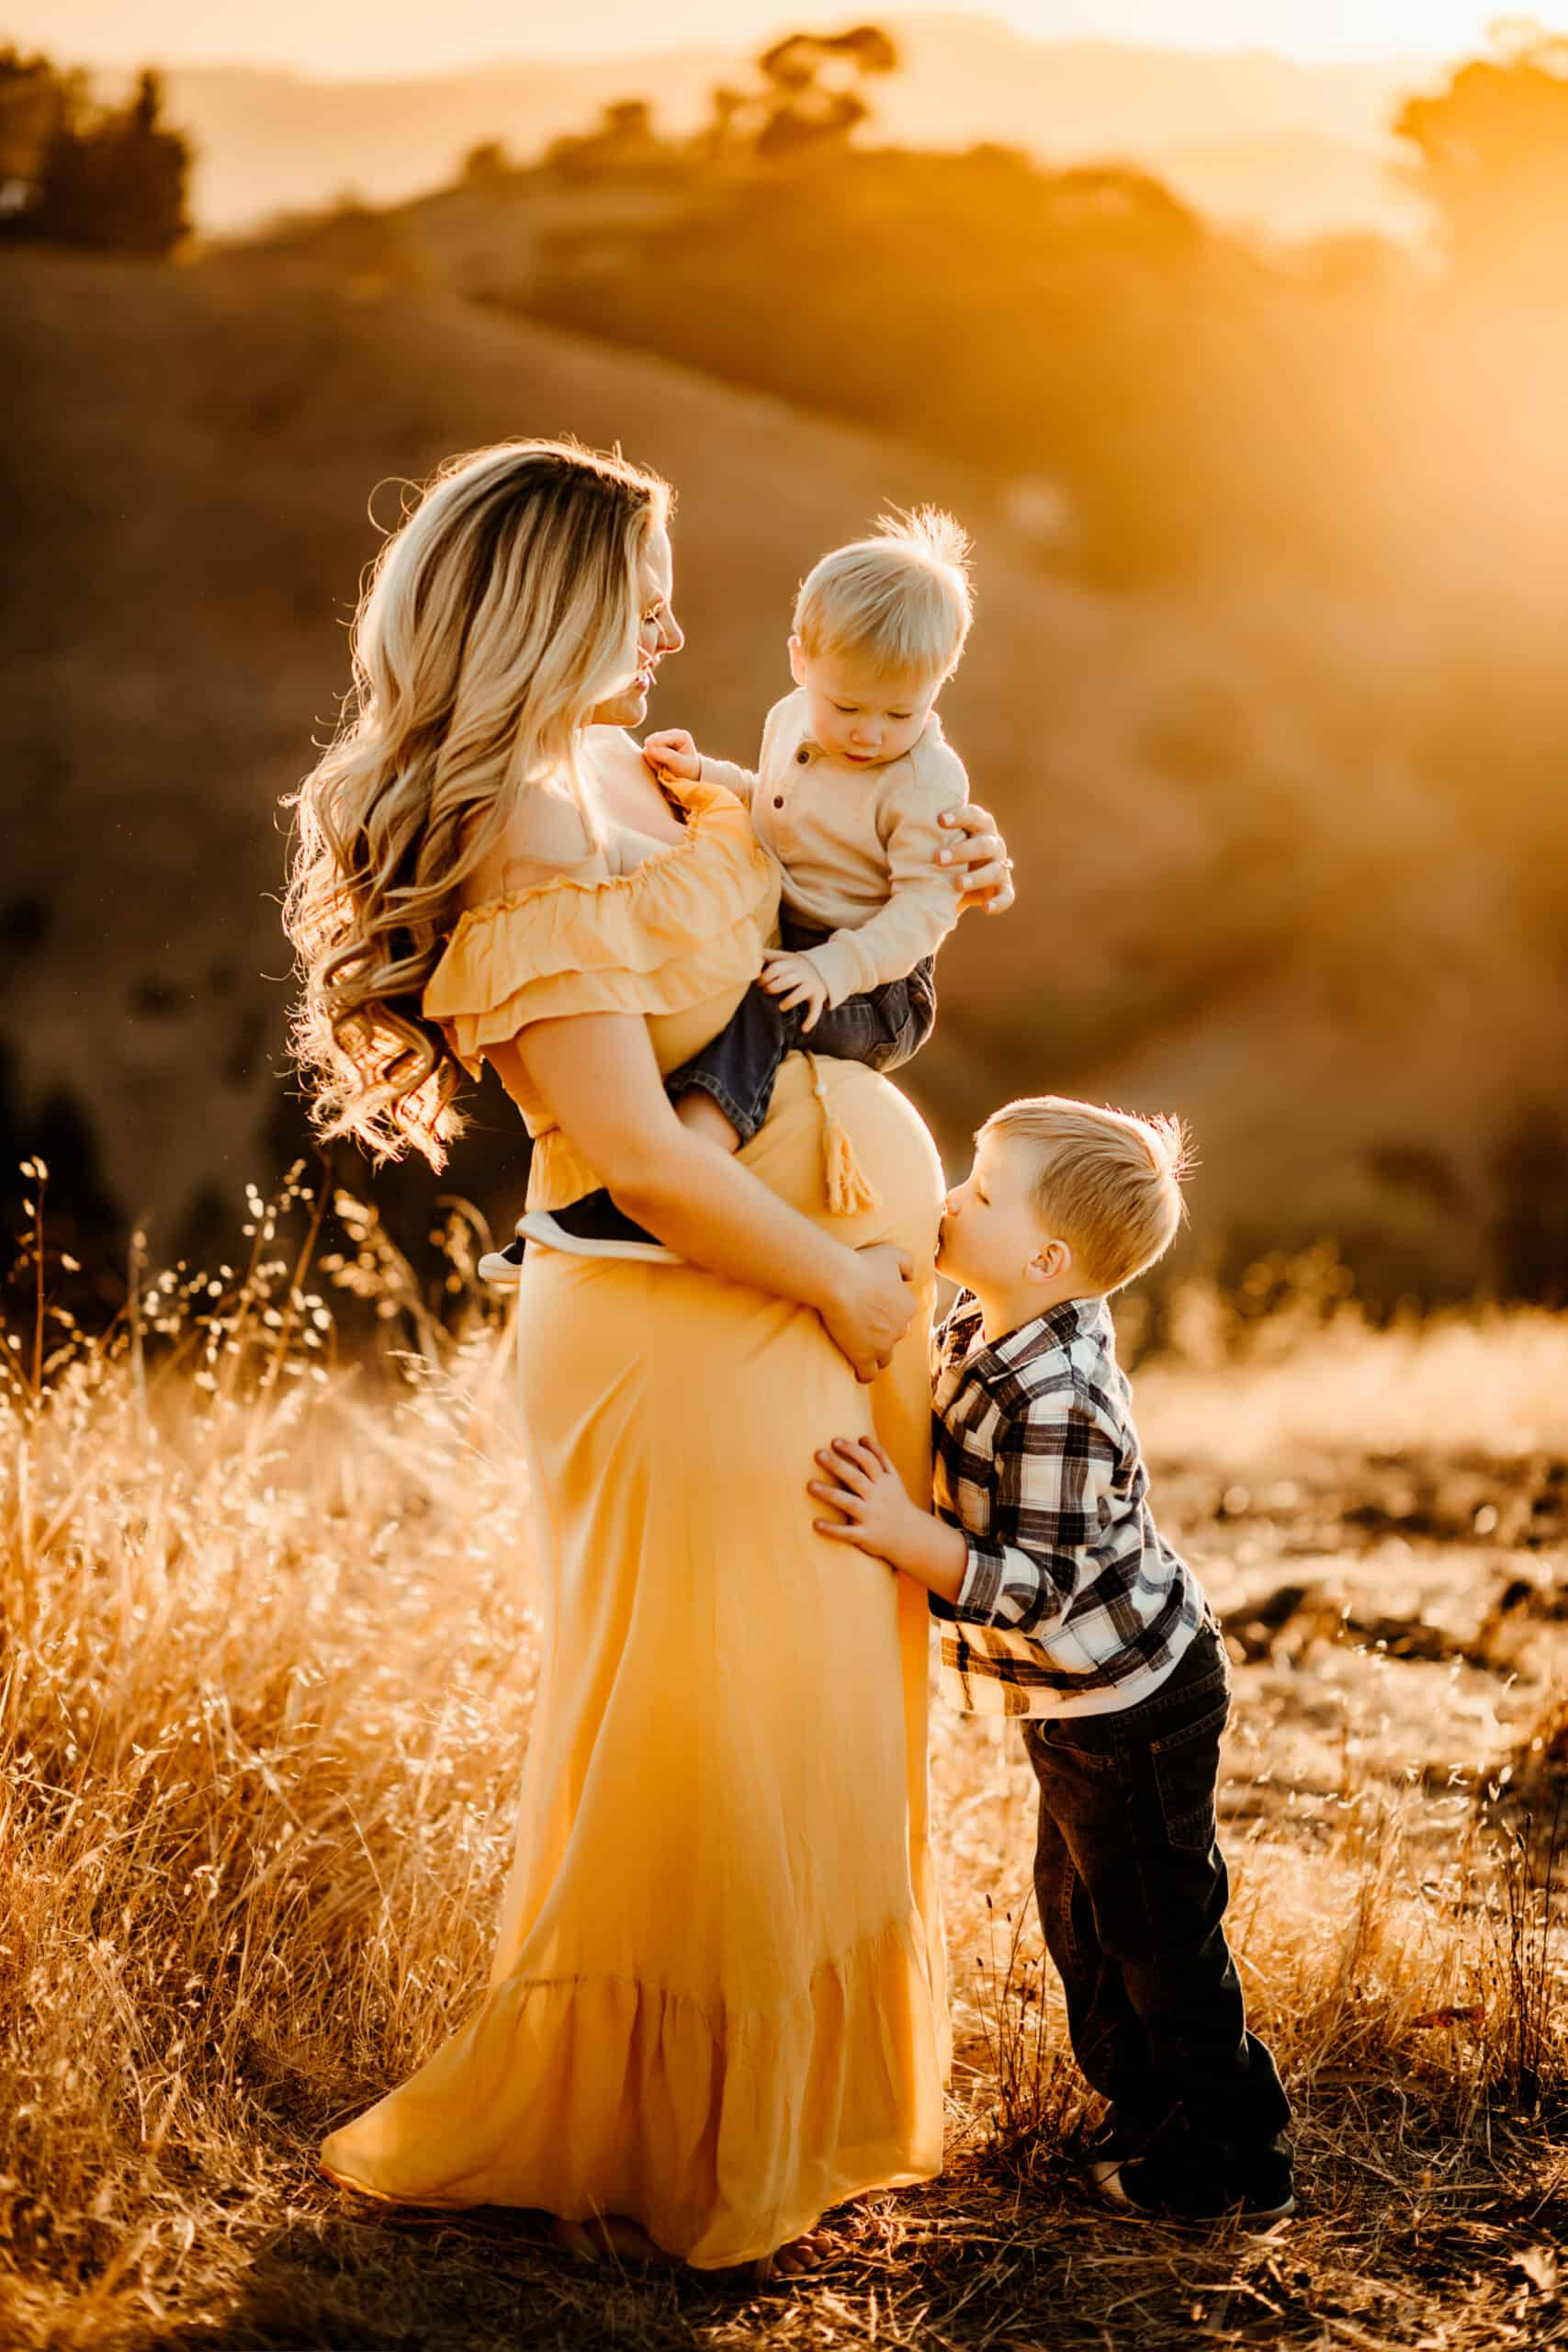 pregnant women in yellow dress with 2 little boys, boy mom of 3, sunset photo